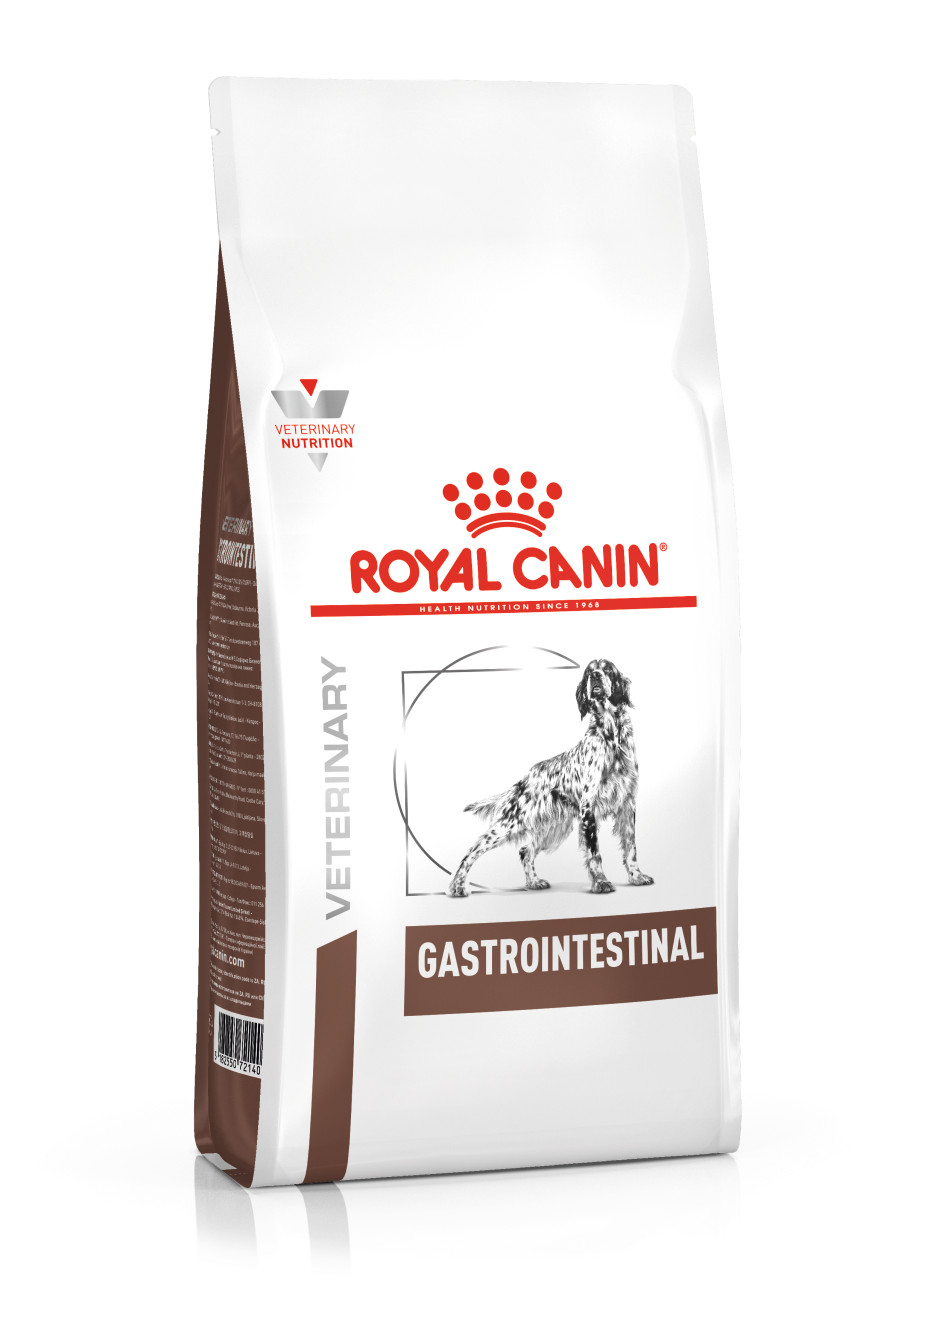 Royal Canin Veterinary Gastrointestinal pour chien